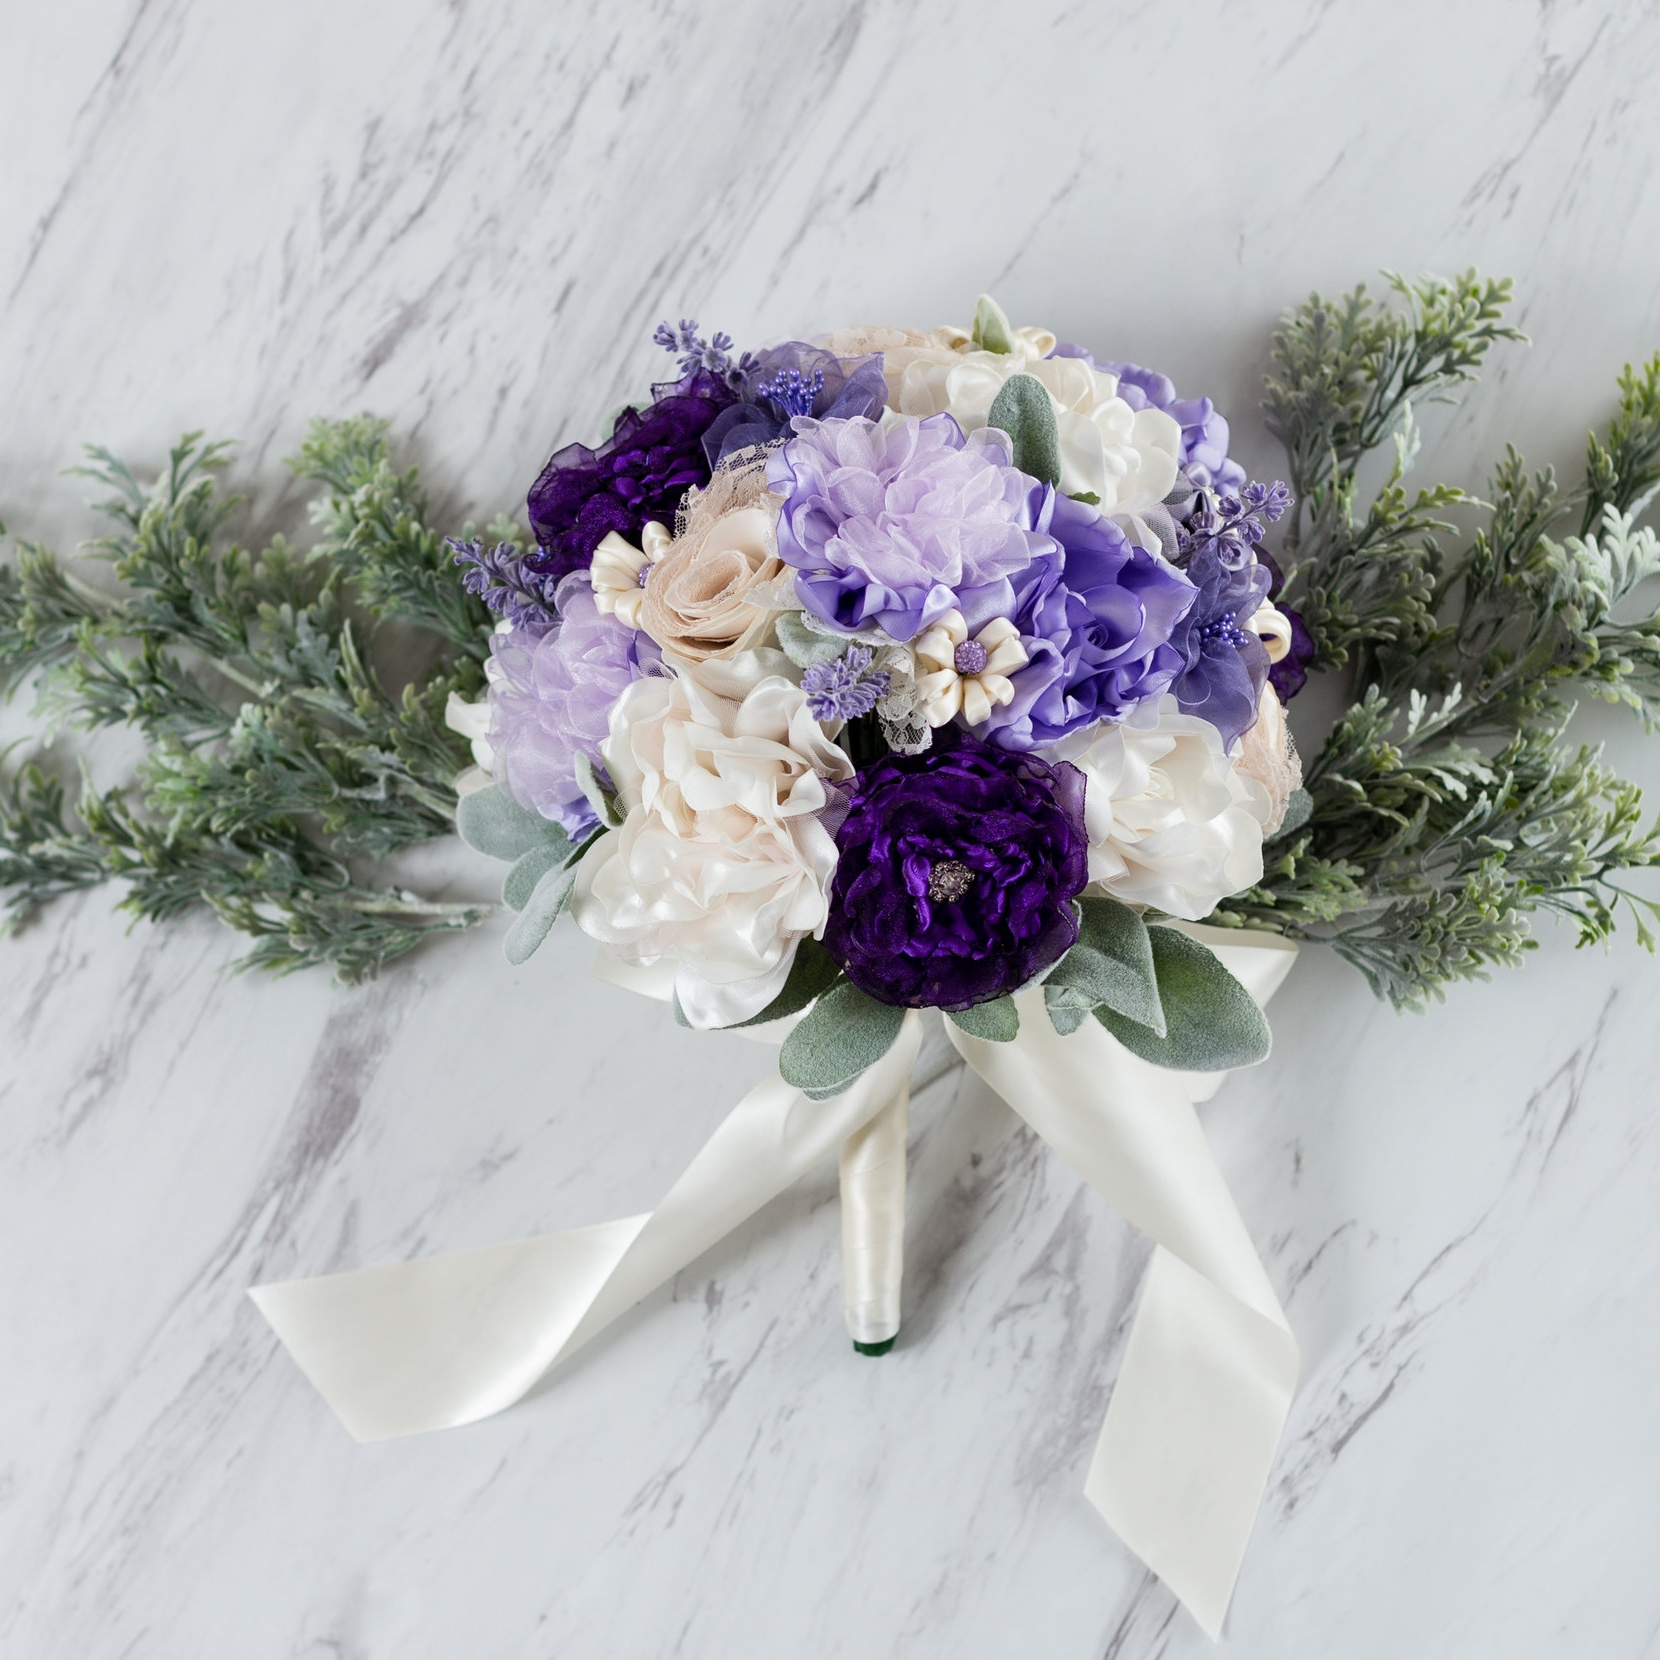 Yours Forever - A Petal and Thread bouquet doesn't just last for your wedding, it's a keepsake you'll enjoy the rest of your life. Display it in your home or save it to pass down to someone special in the future. All arrangements come with a sturdy, decorative box.